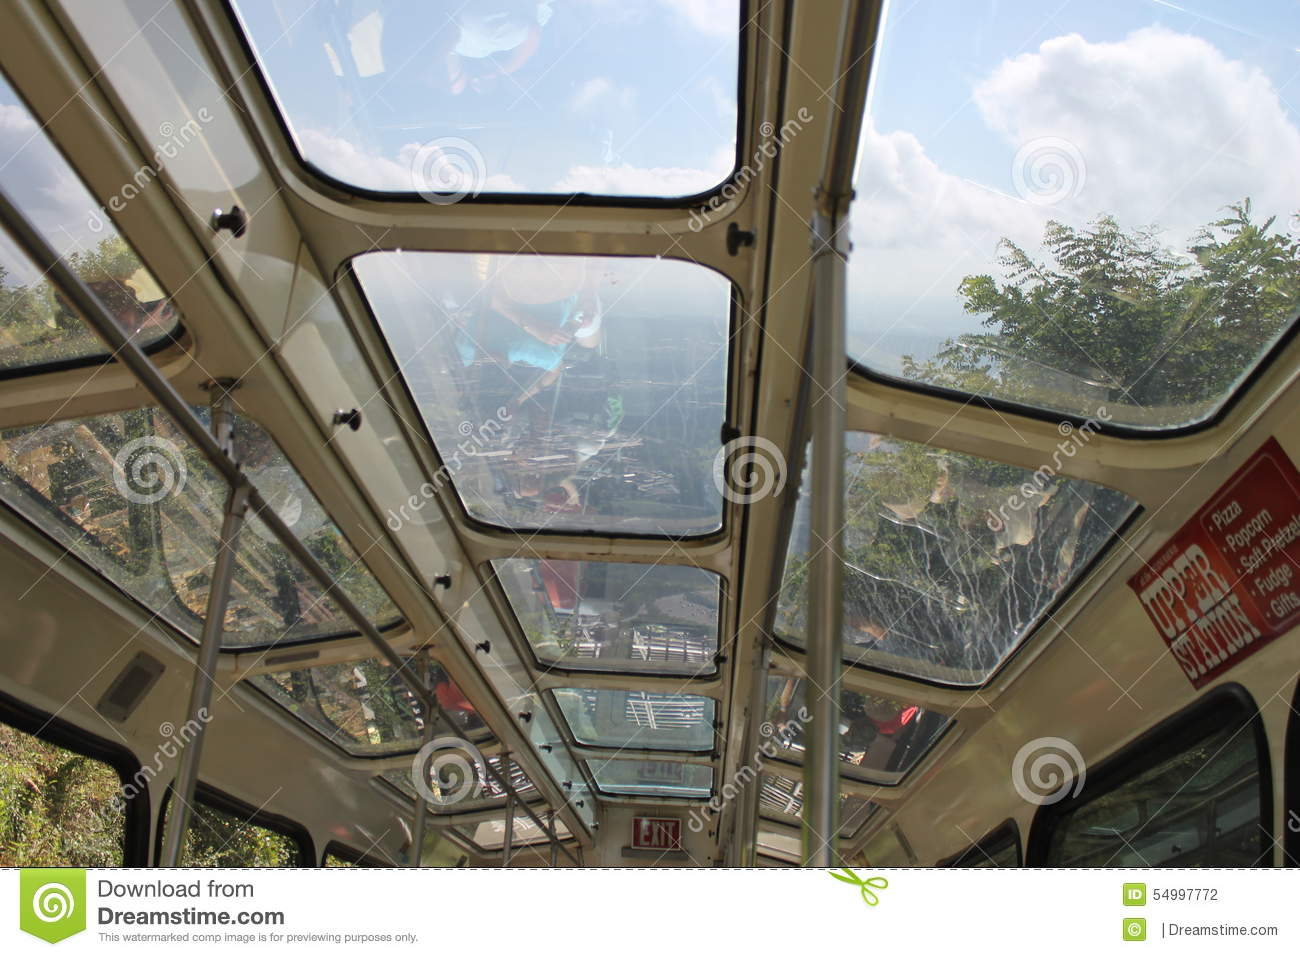 Lookout mountain incline railway chattanooga tn stock photo royalty free stock photo sciox Gallery